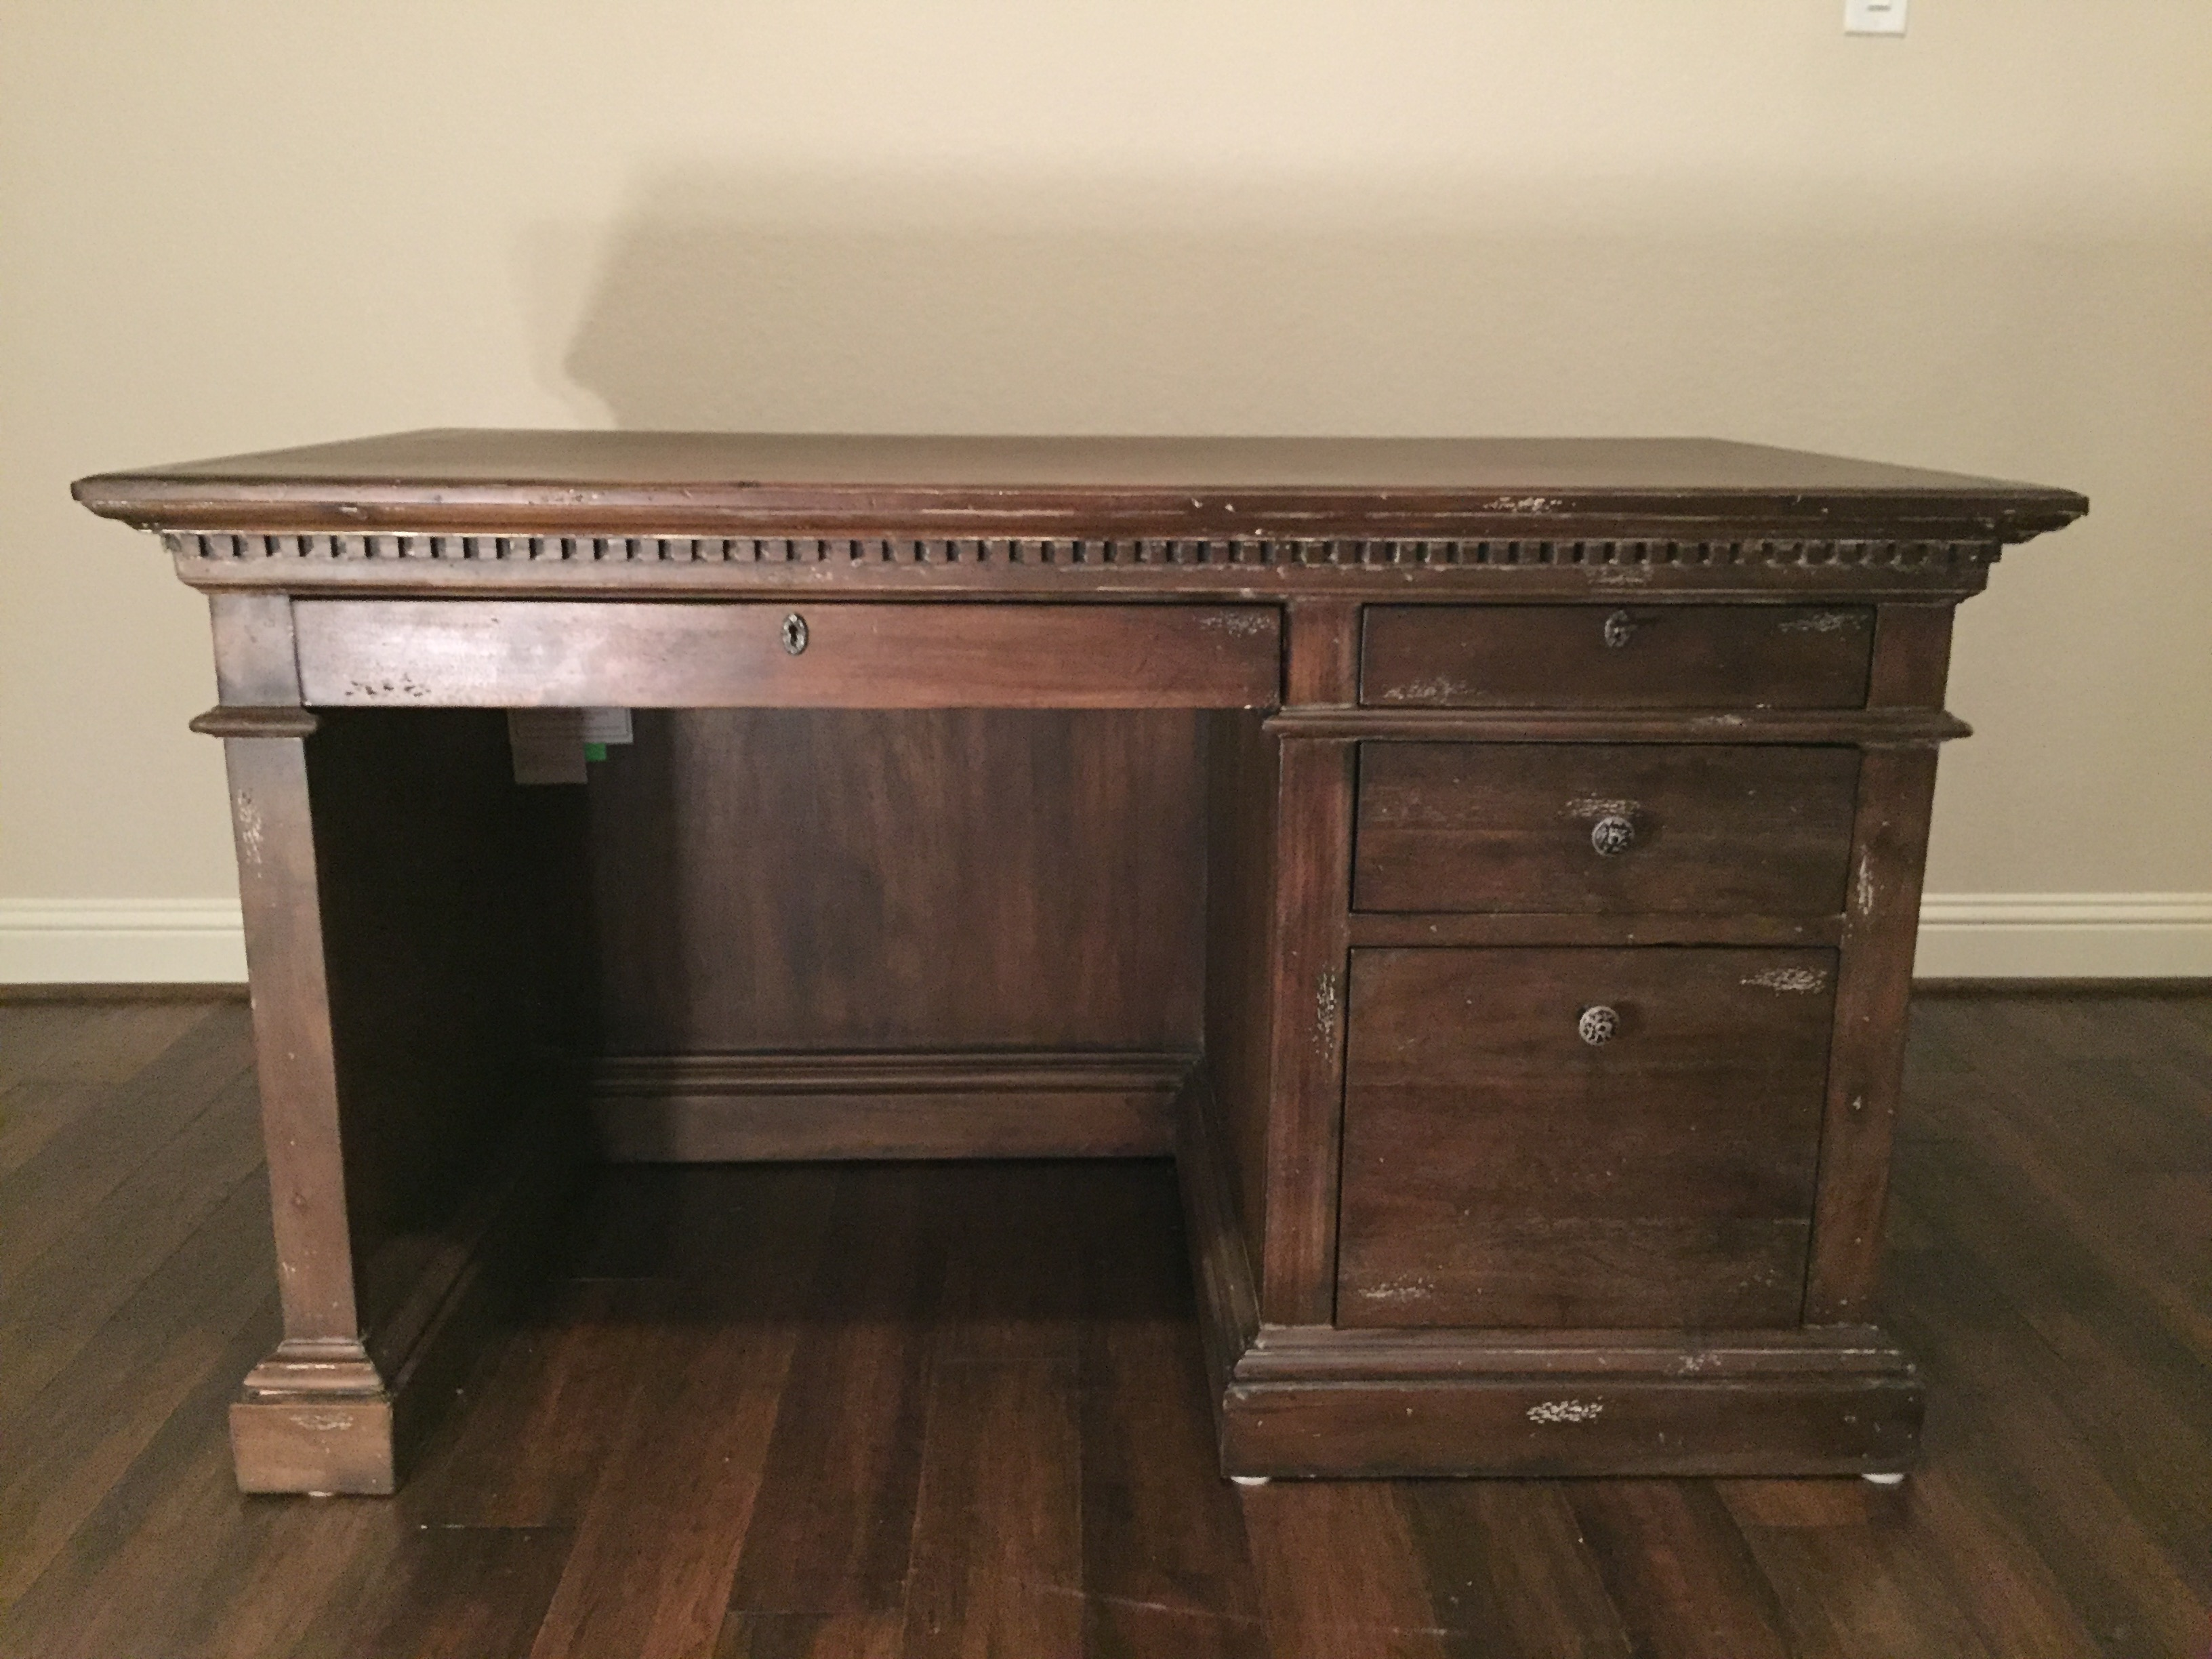 This Classic Restoration Hardware Desk Is Both Beautiful And Functional.  Very Big Surface Space.